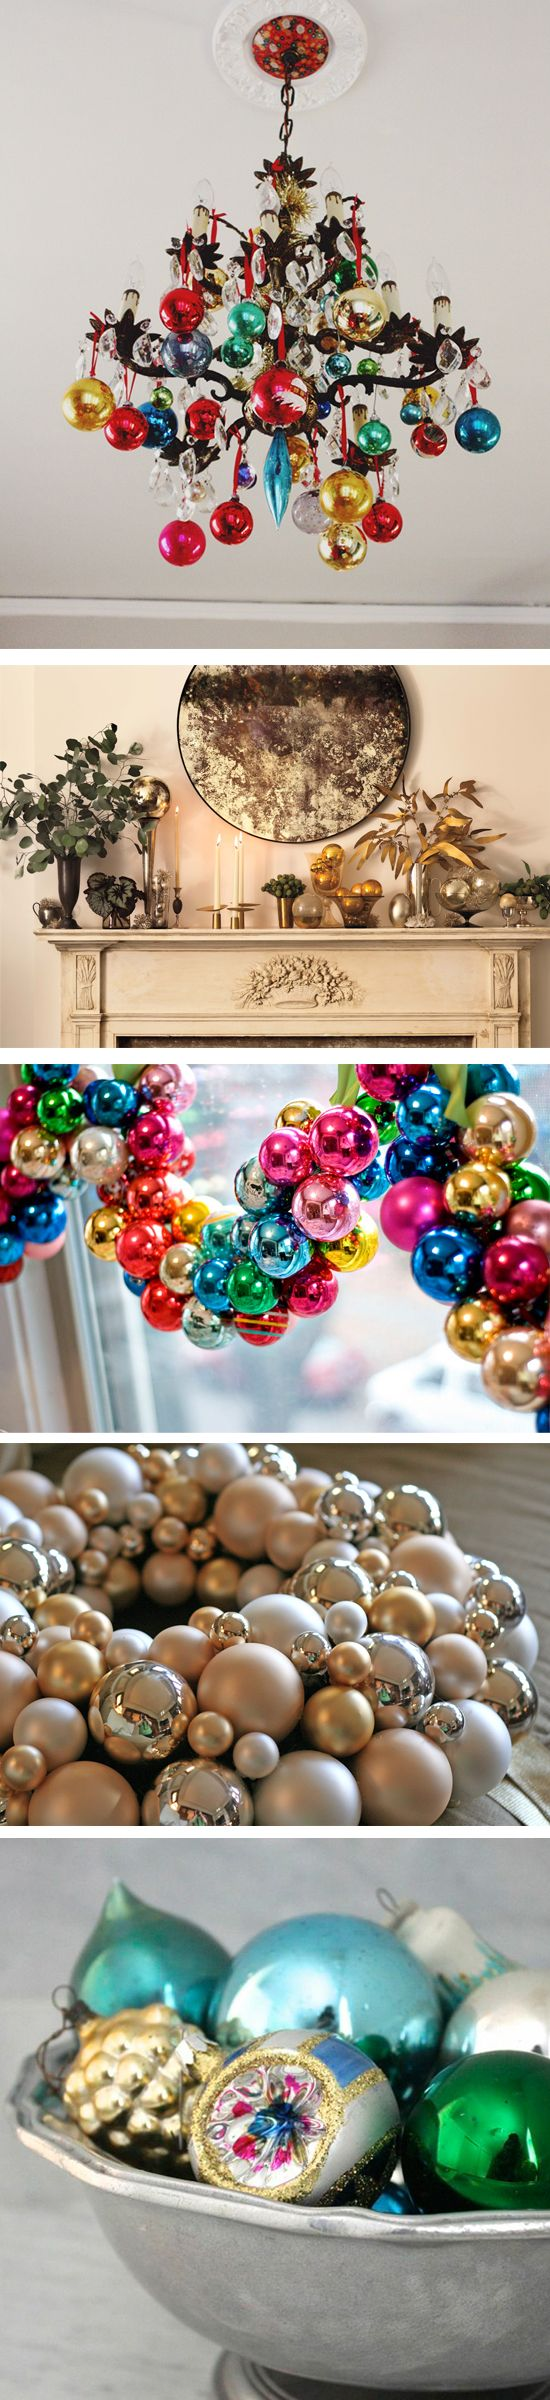 Pretty, love them hanging on the chandelier... no tree necessary, but who wouldn't want one anyway?